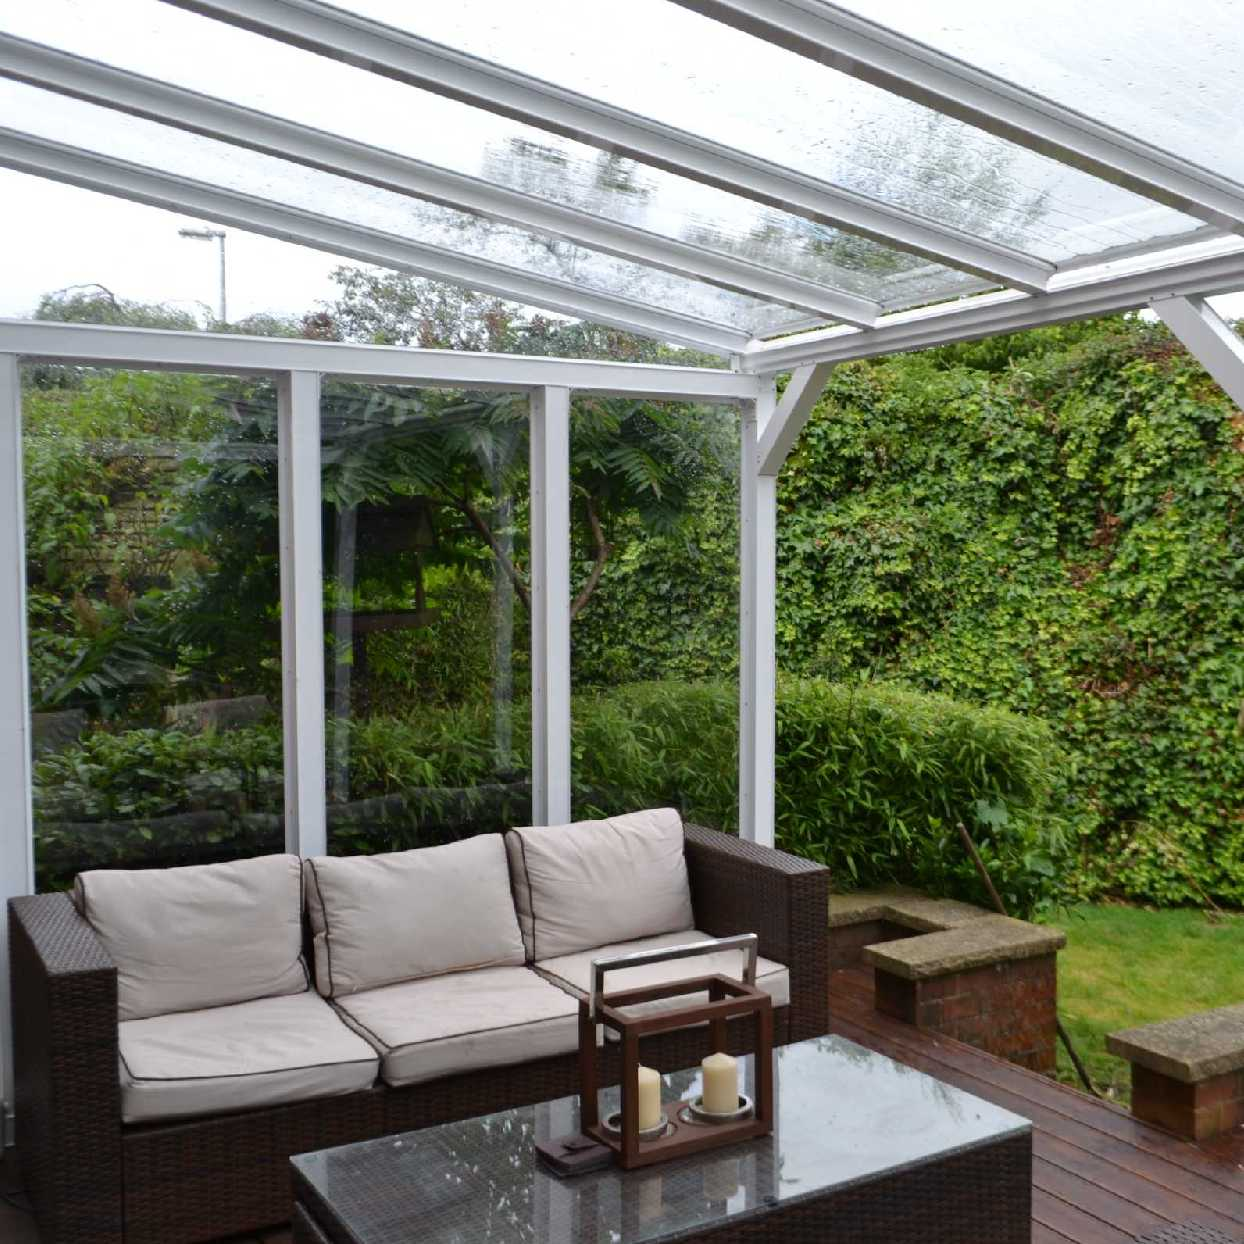 Great selection of Omega Smart Lean-To Canopy with 16mm Polycarbonate Glazing - 12.0m (W) x 1.5m (P), (5) Supporting Posts